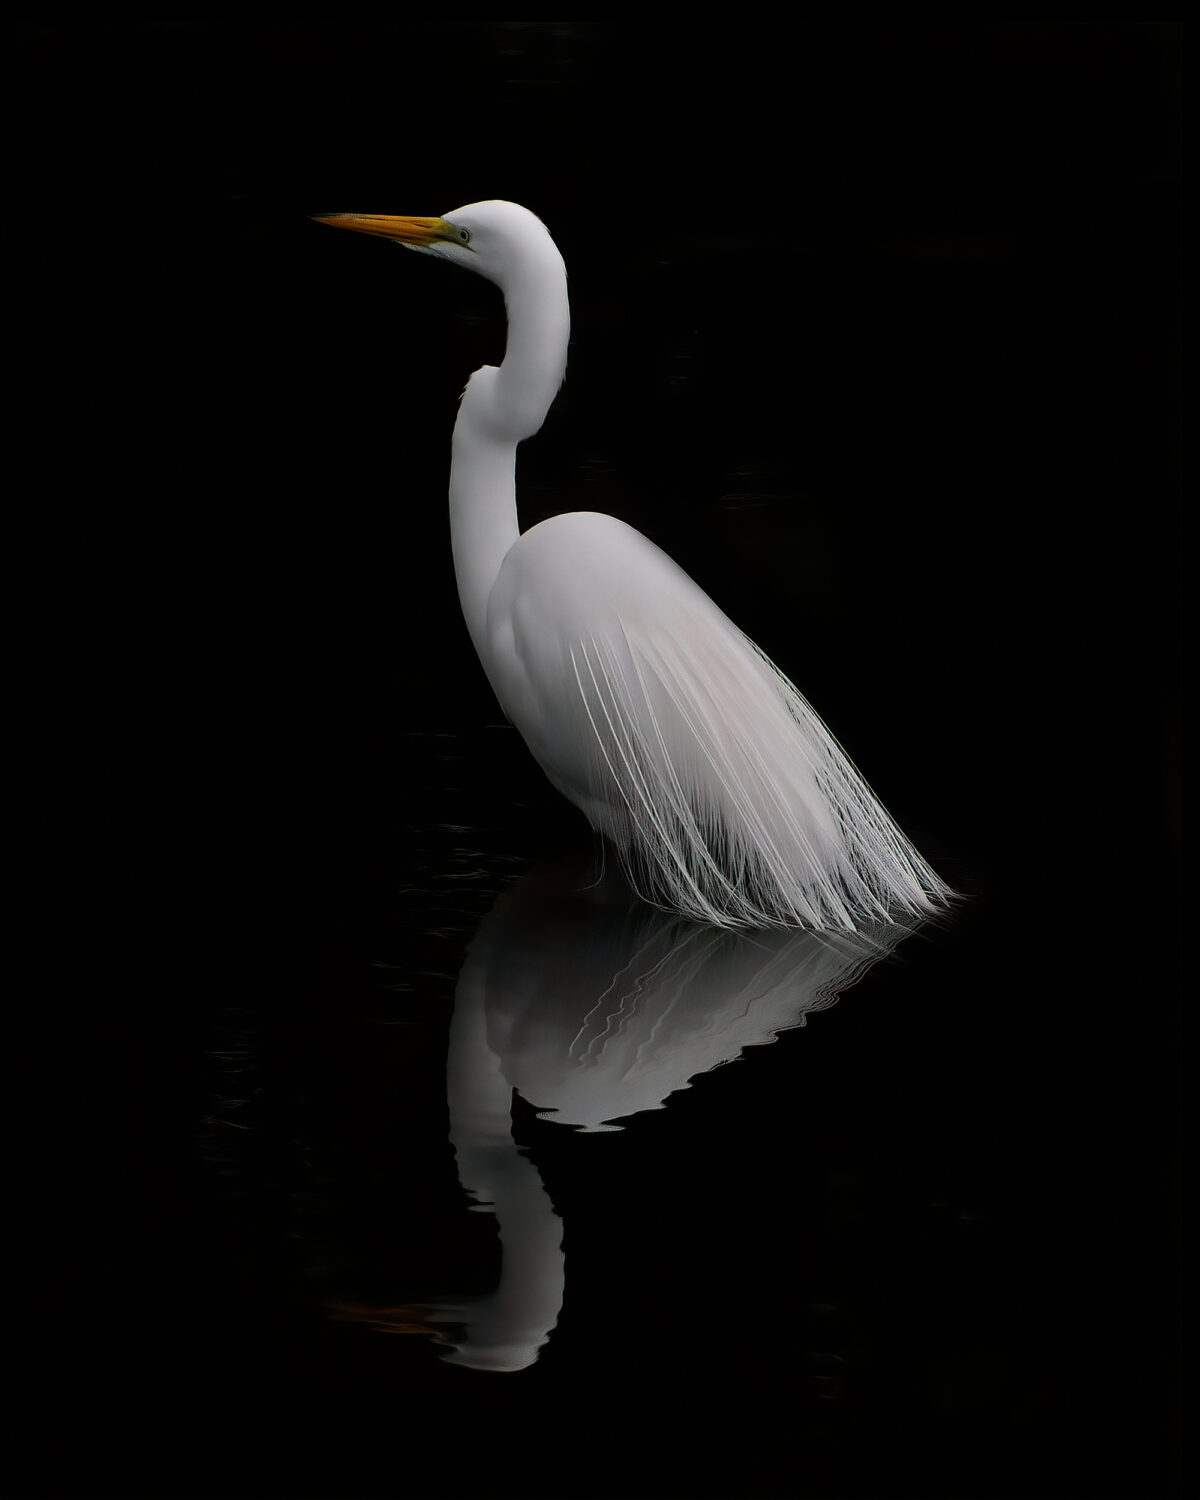 Egret Reflection by Linda ONeill